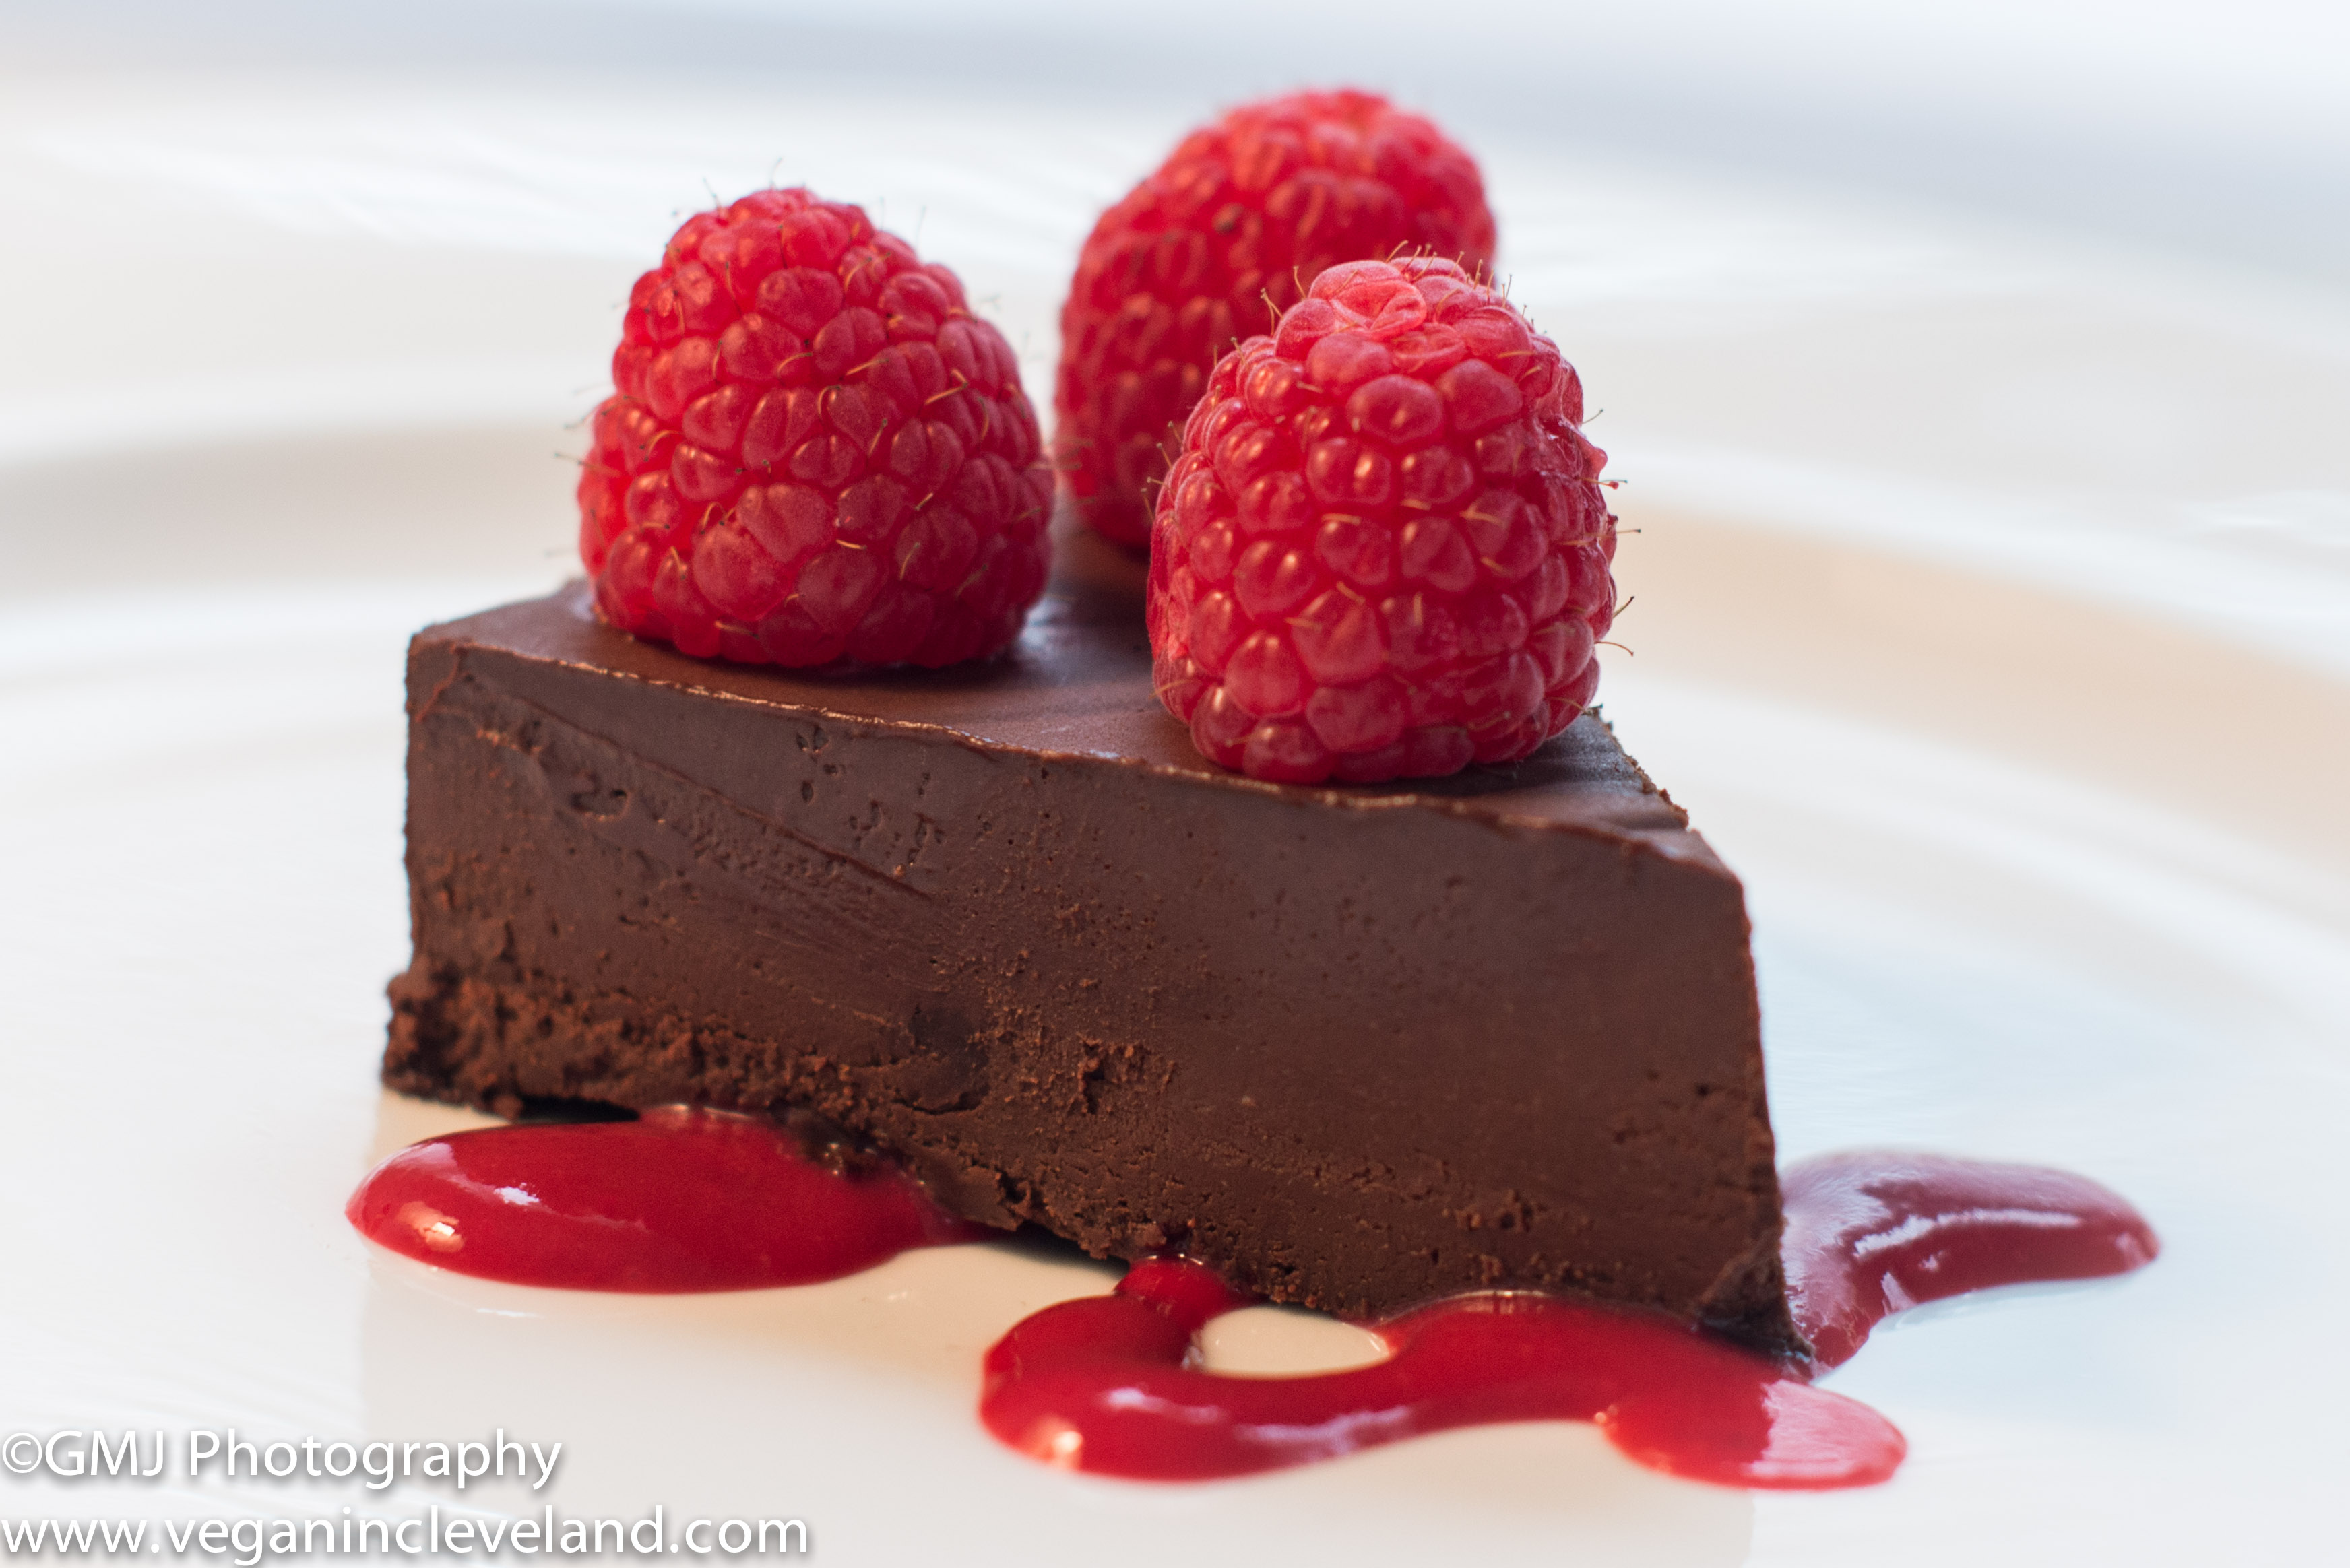 Chocolove Flourless Chocolate Cake with Raspberry Coulis Vegan in